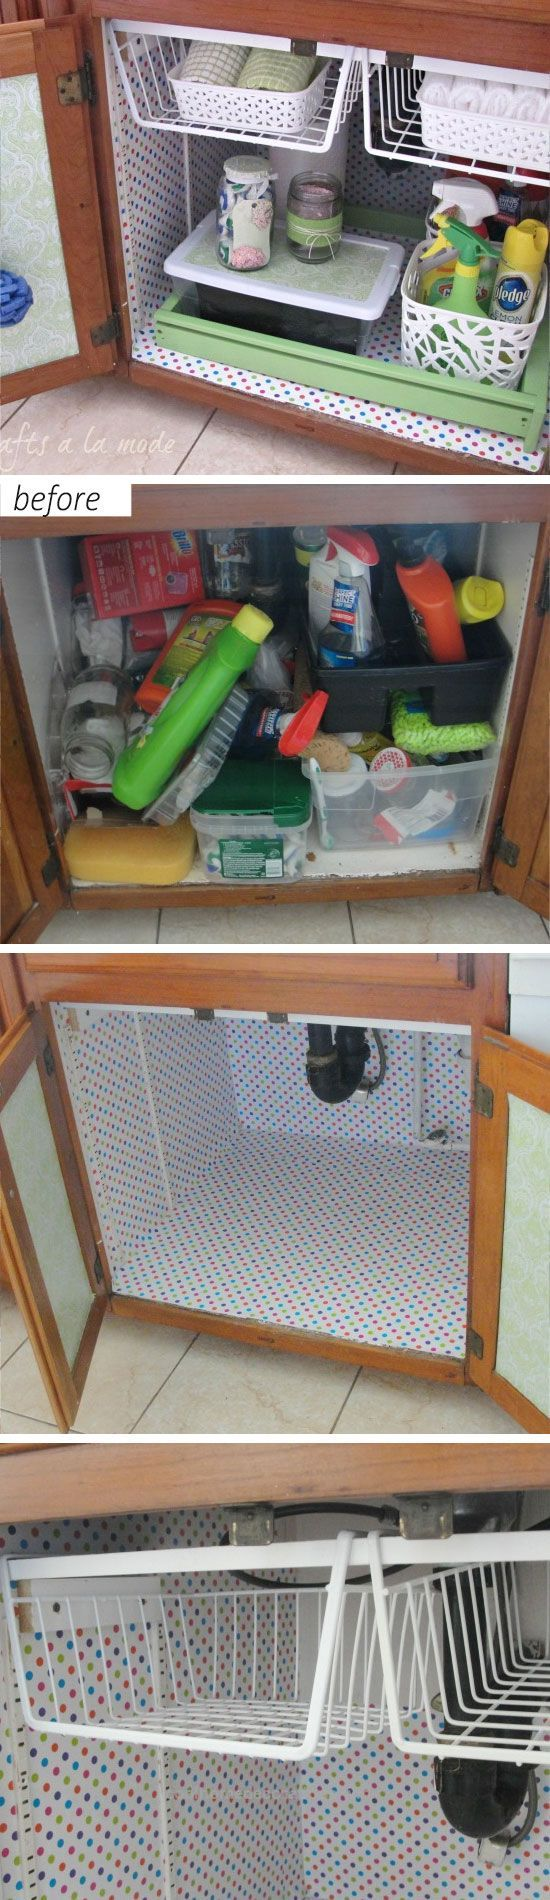 Check out this Under the Sink Makeover   Easy Storage Ideas for Small Spaces   DIY Organization Ideas for the Home  The post  Under the Sink Makeover   Easy Storage Ideas for Small ..